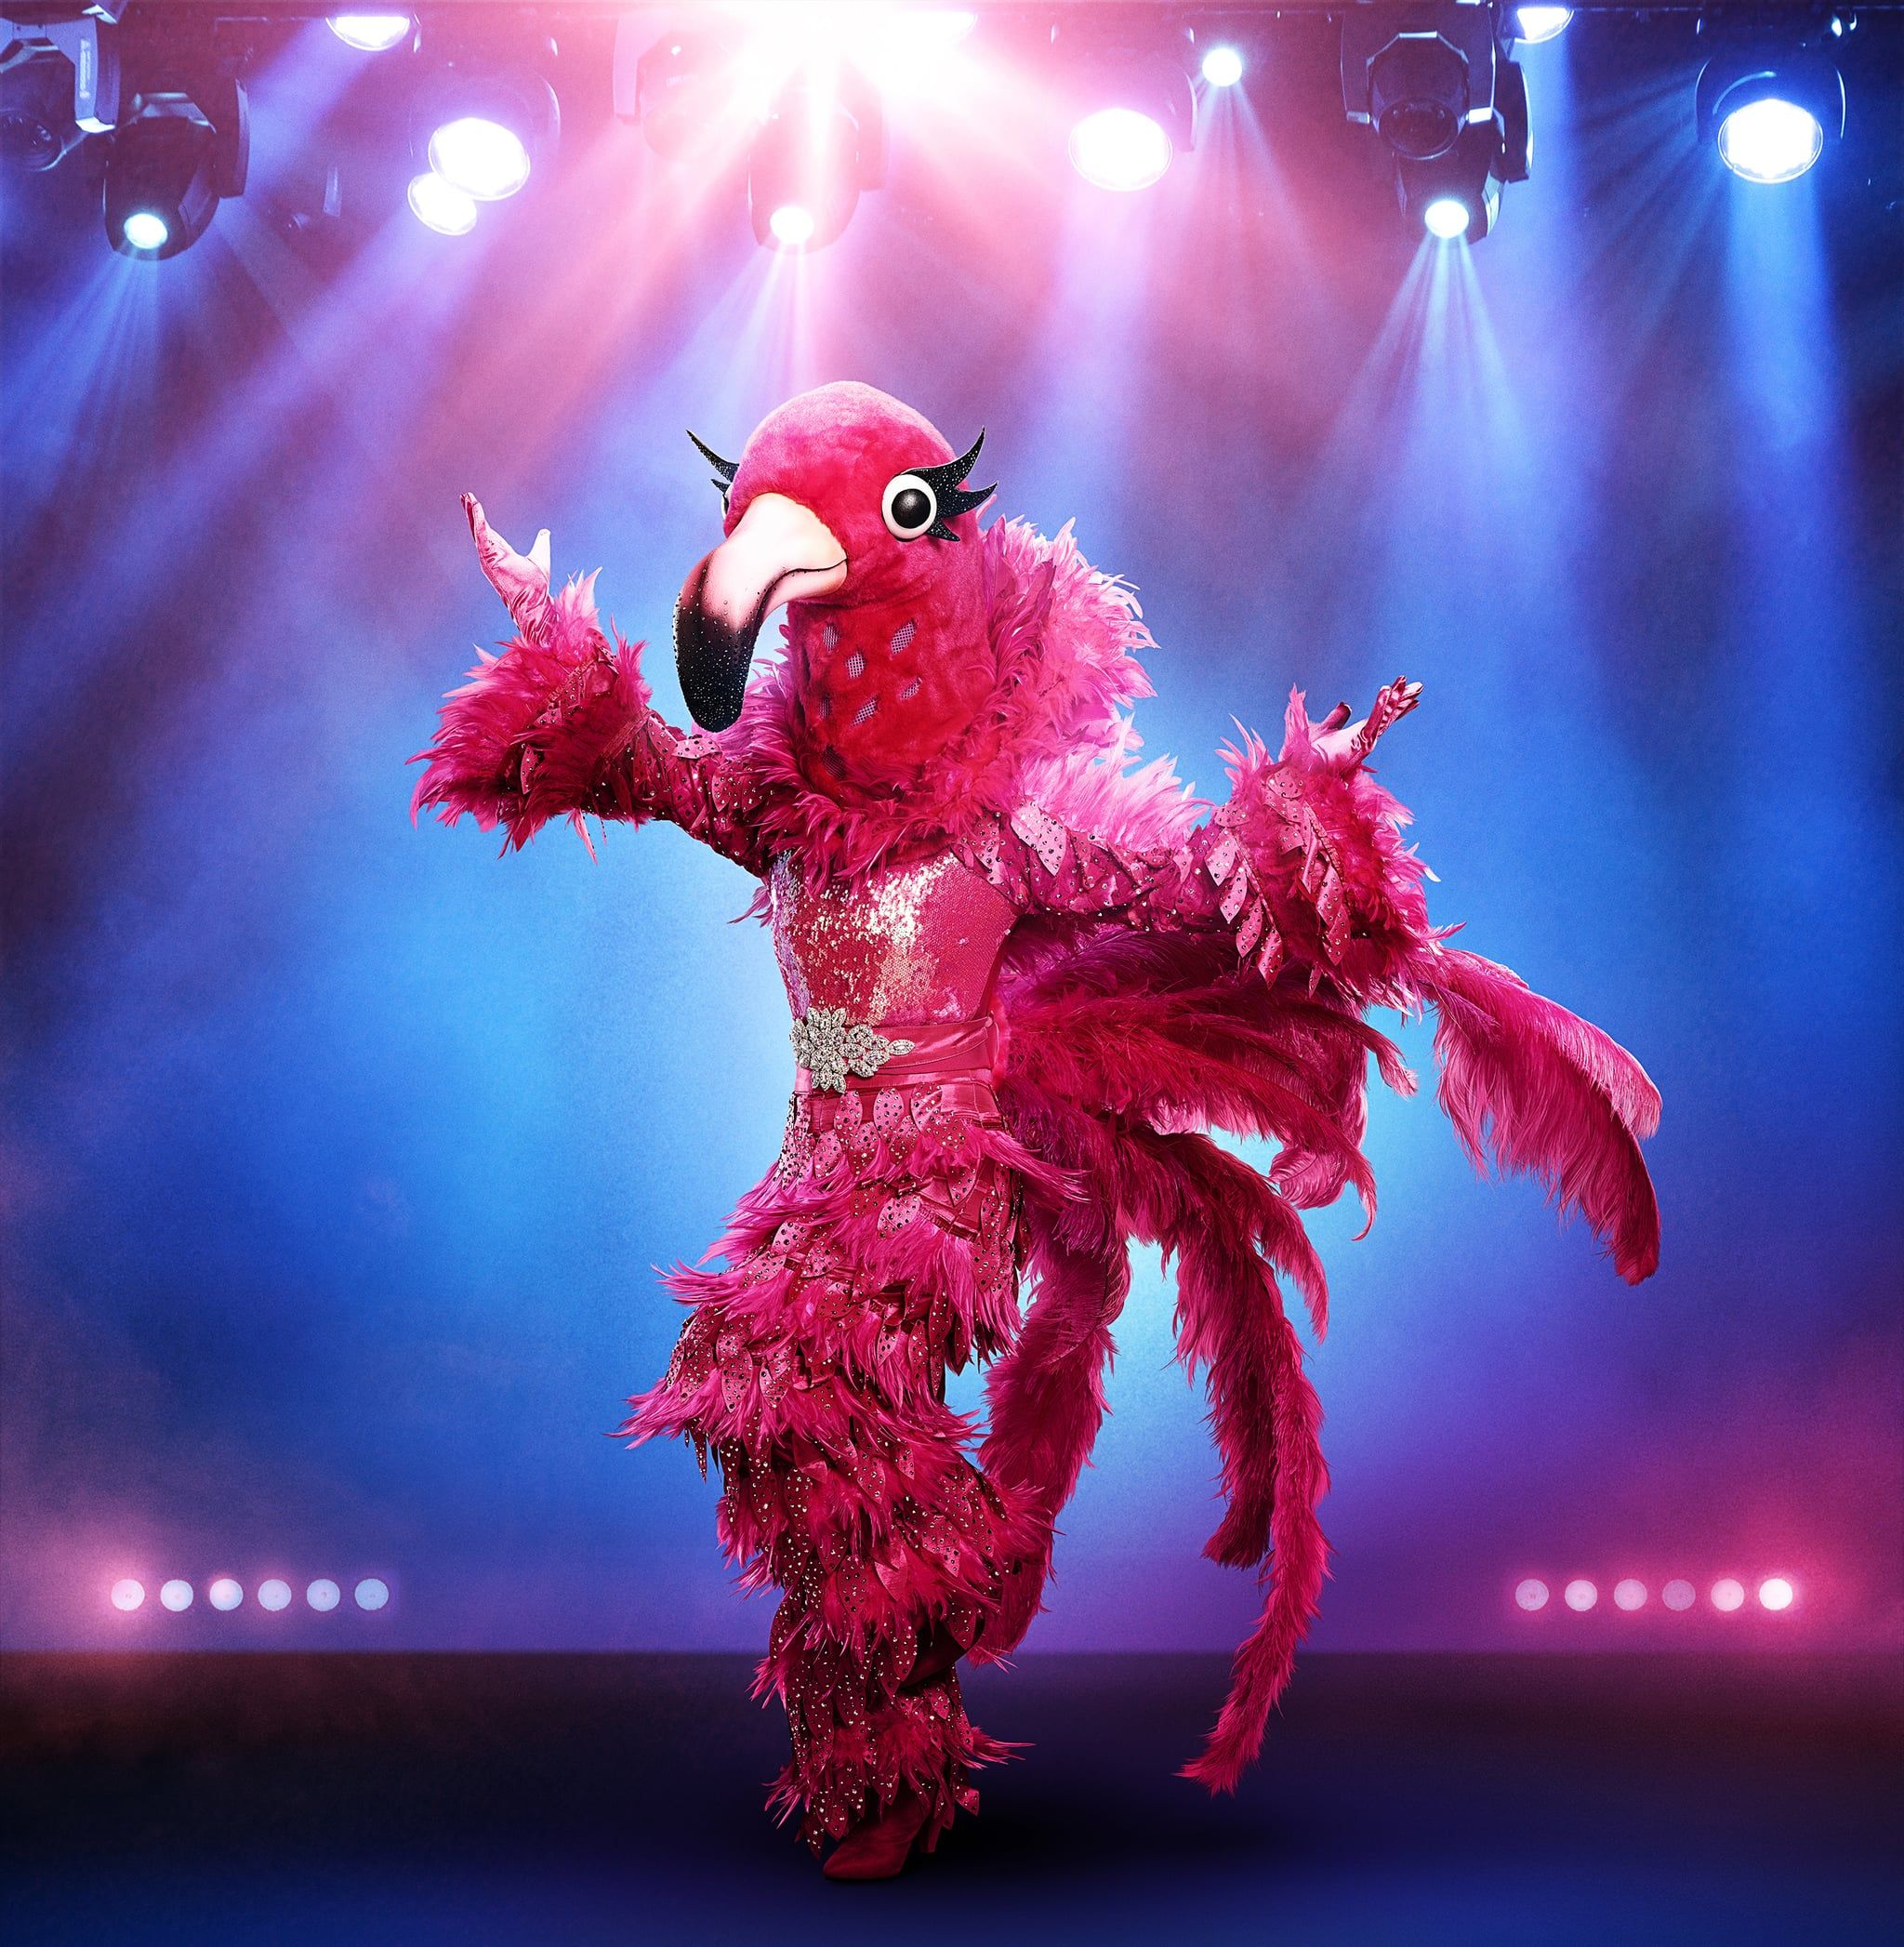 Who Is the Flamingo on 'The Masked Singer' Season 2?